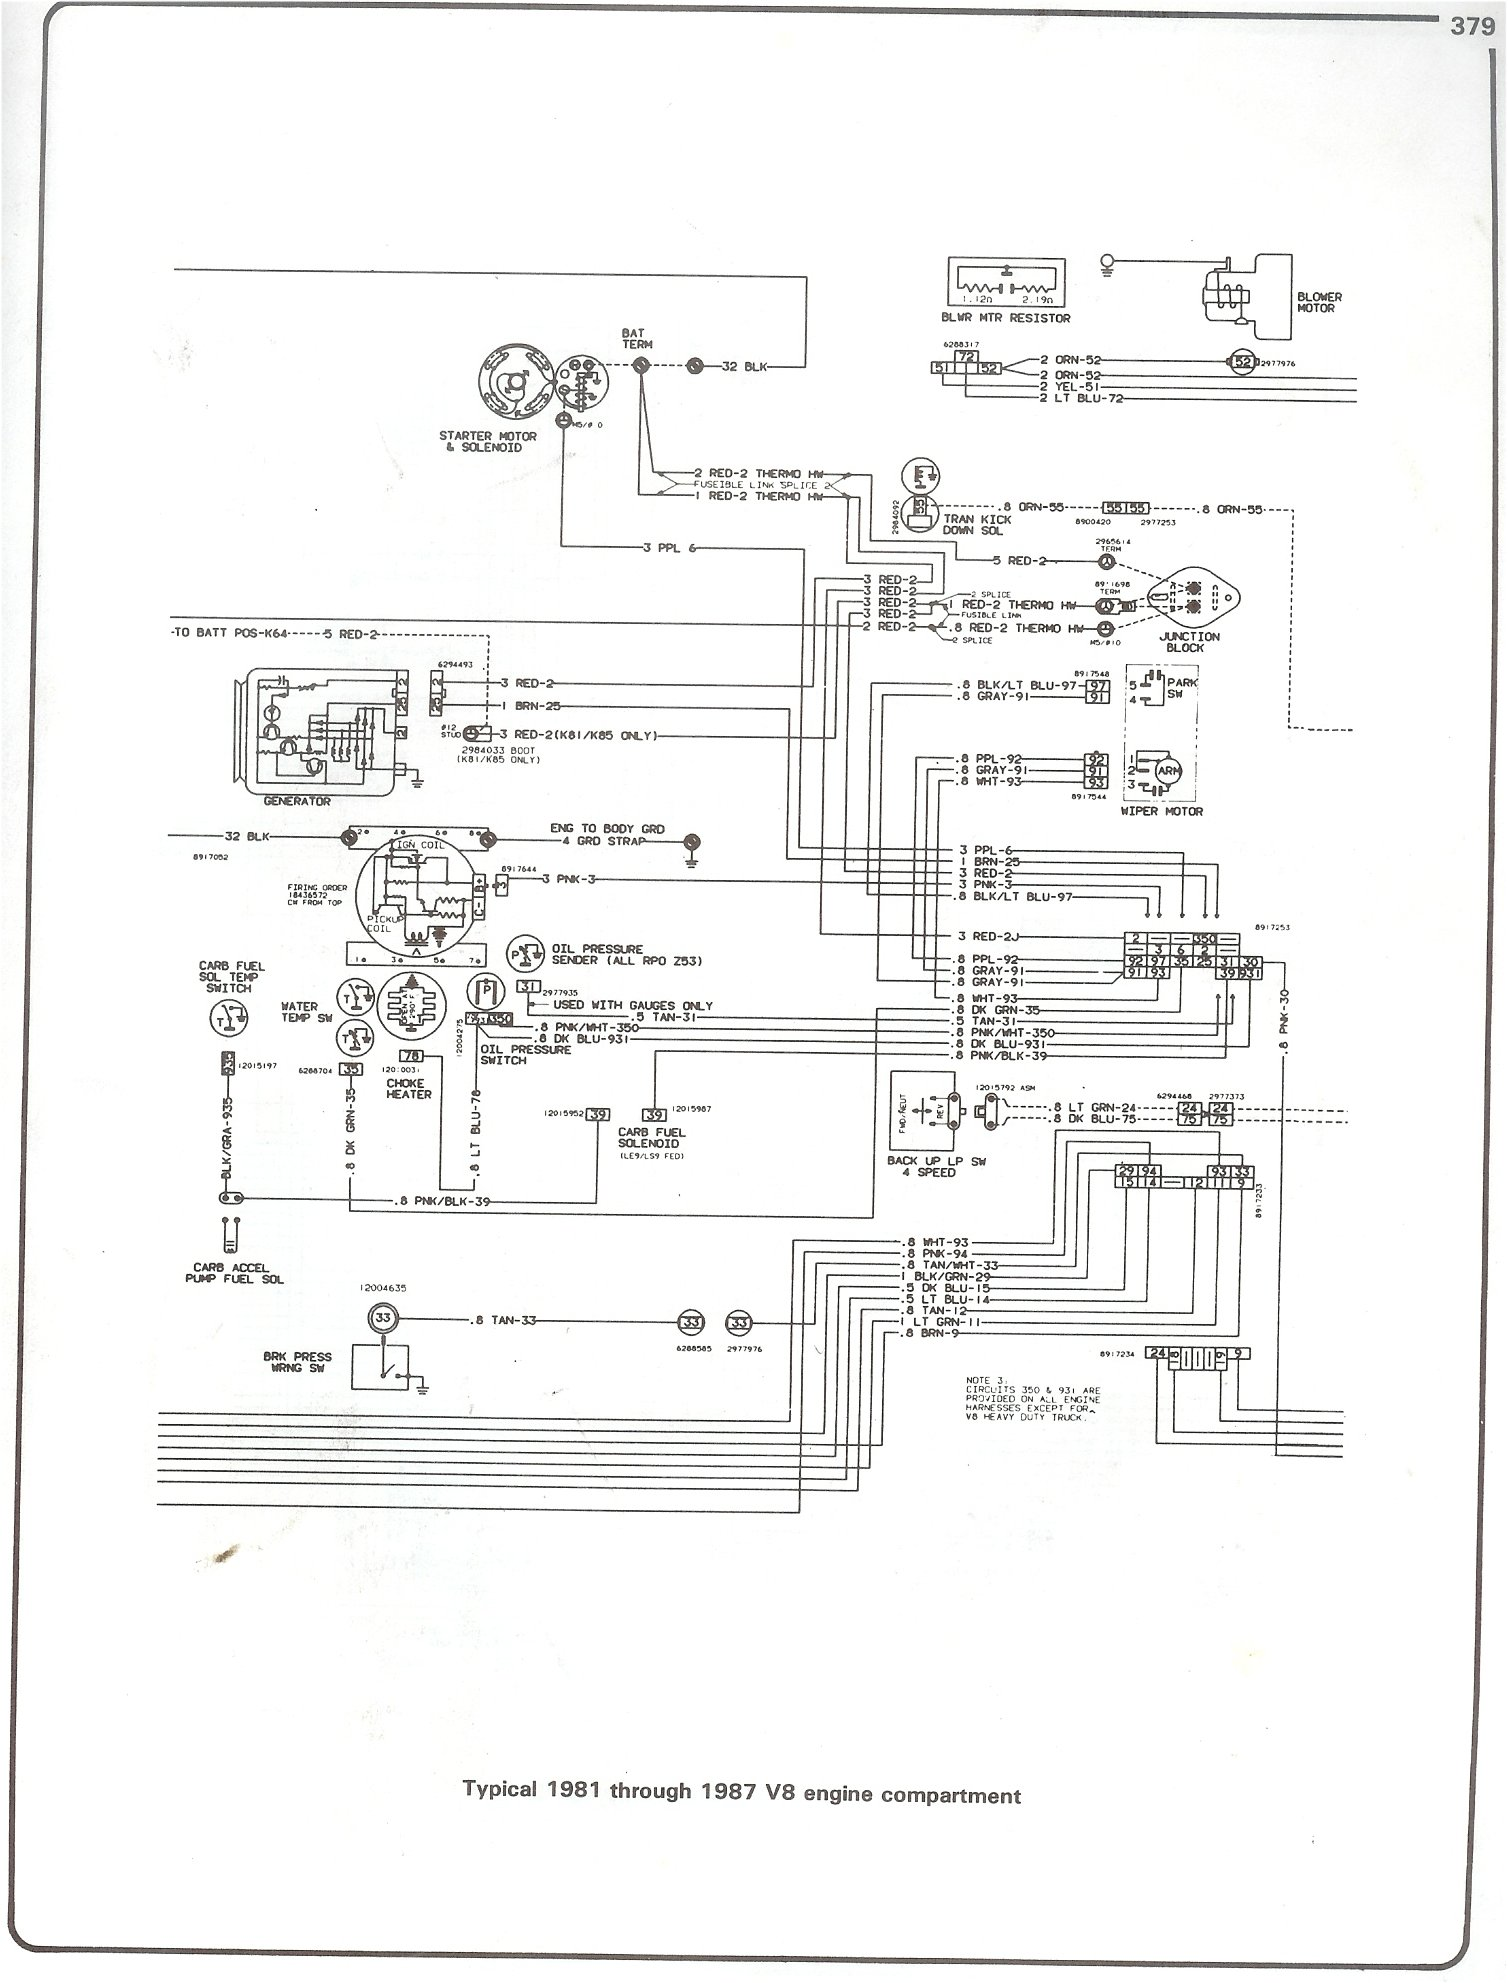 engine wiring diagram 1977 c10 v8 house wiring diagram symbols u2022 rh maxturner co 1965 Chevy C10 Wiring-Diagram 1965 C10 Wiring-Diagram